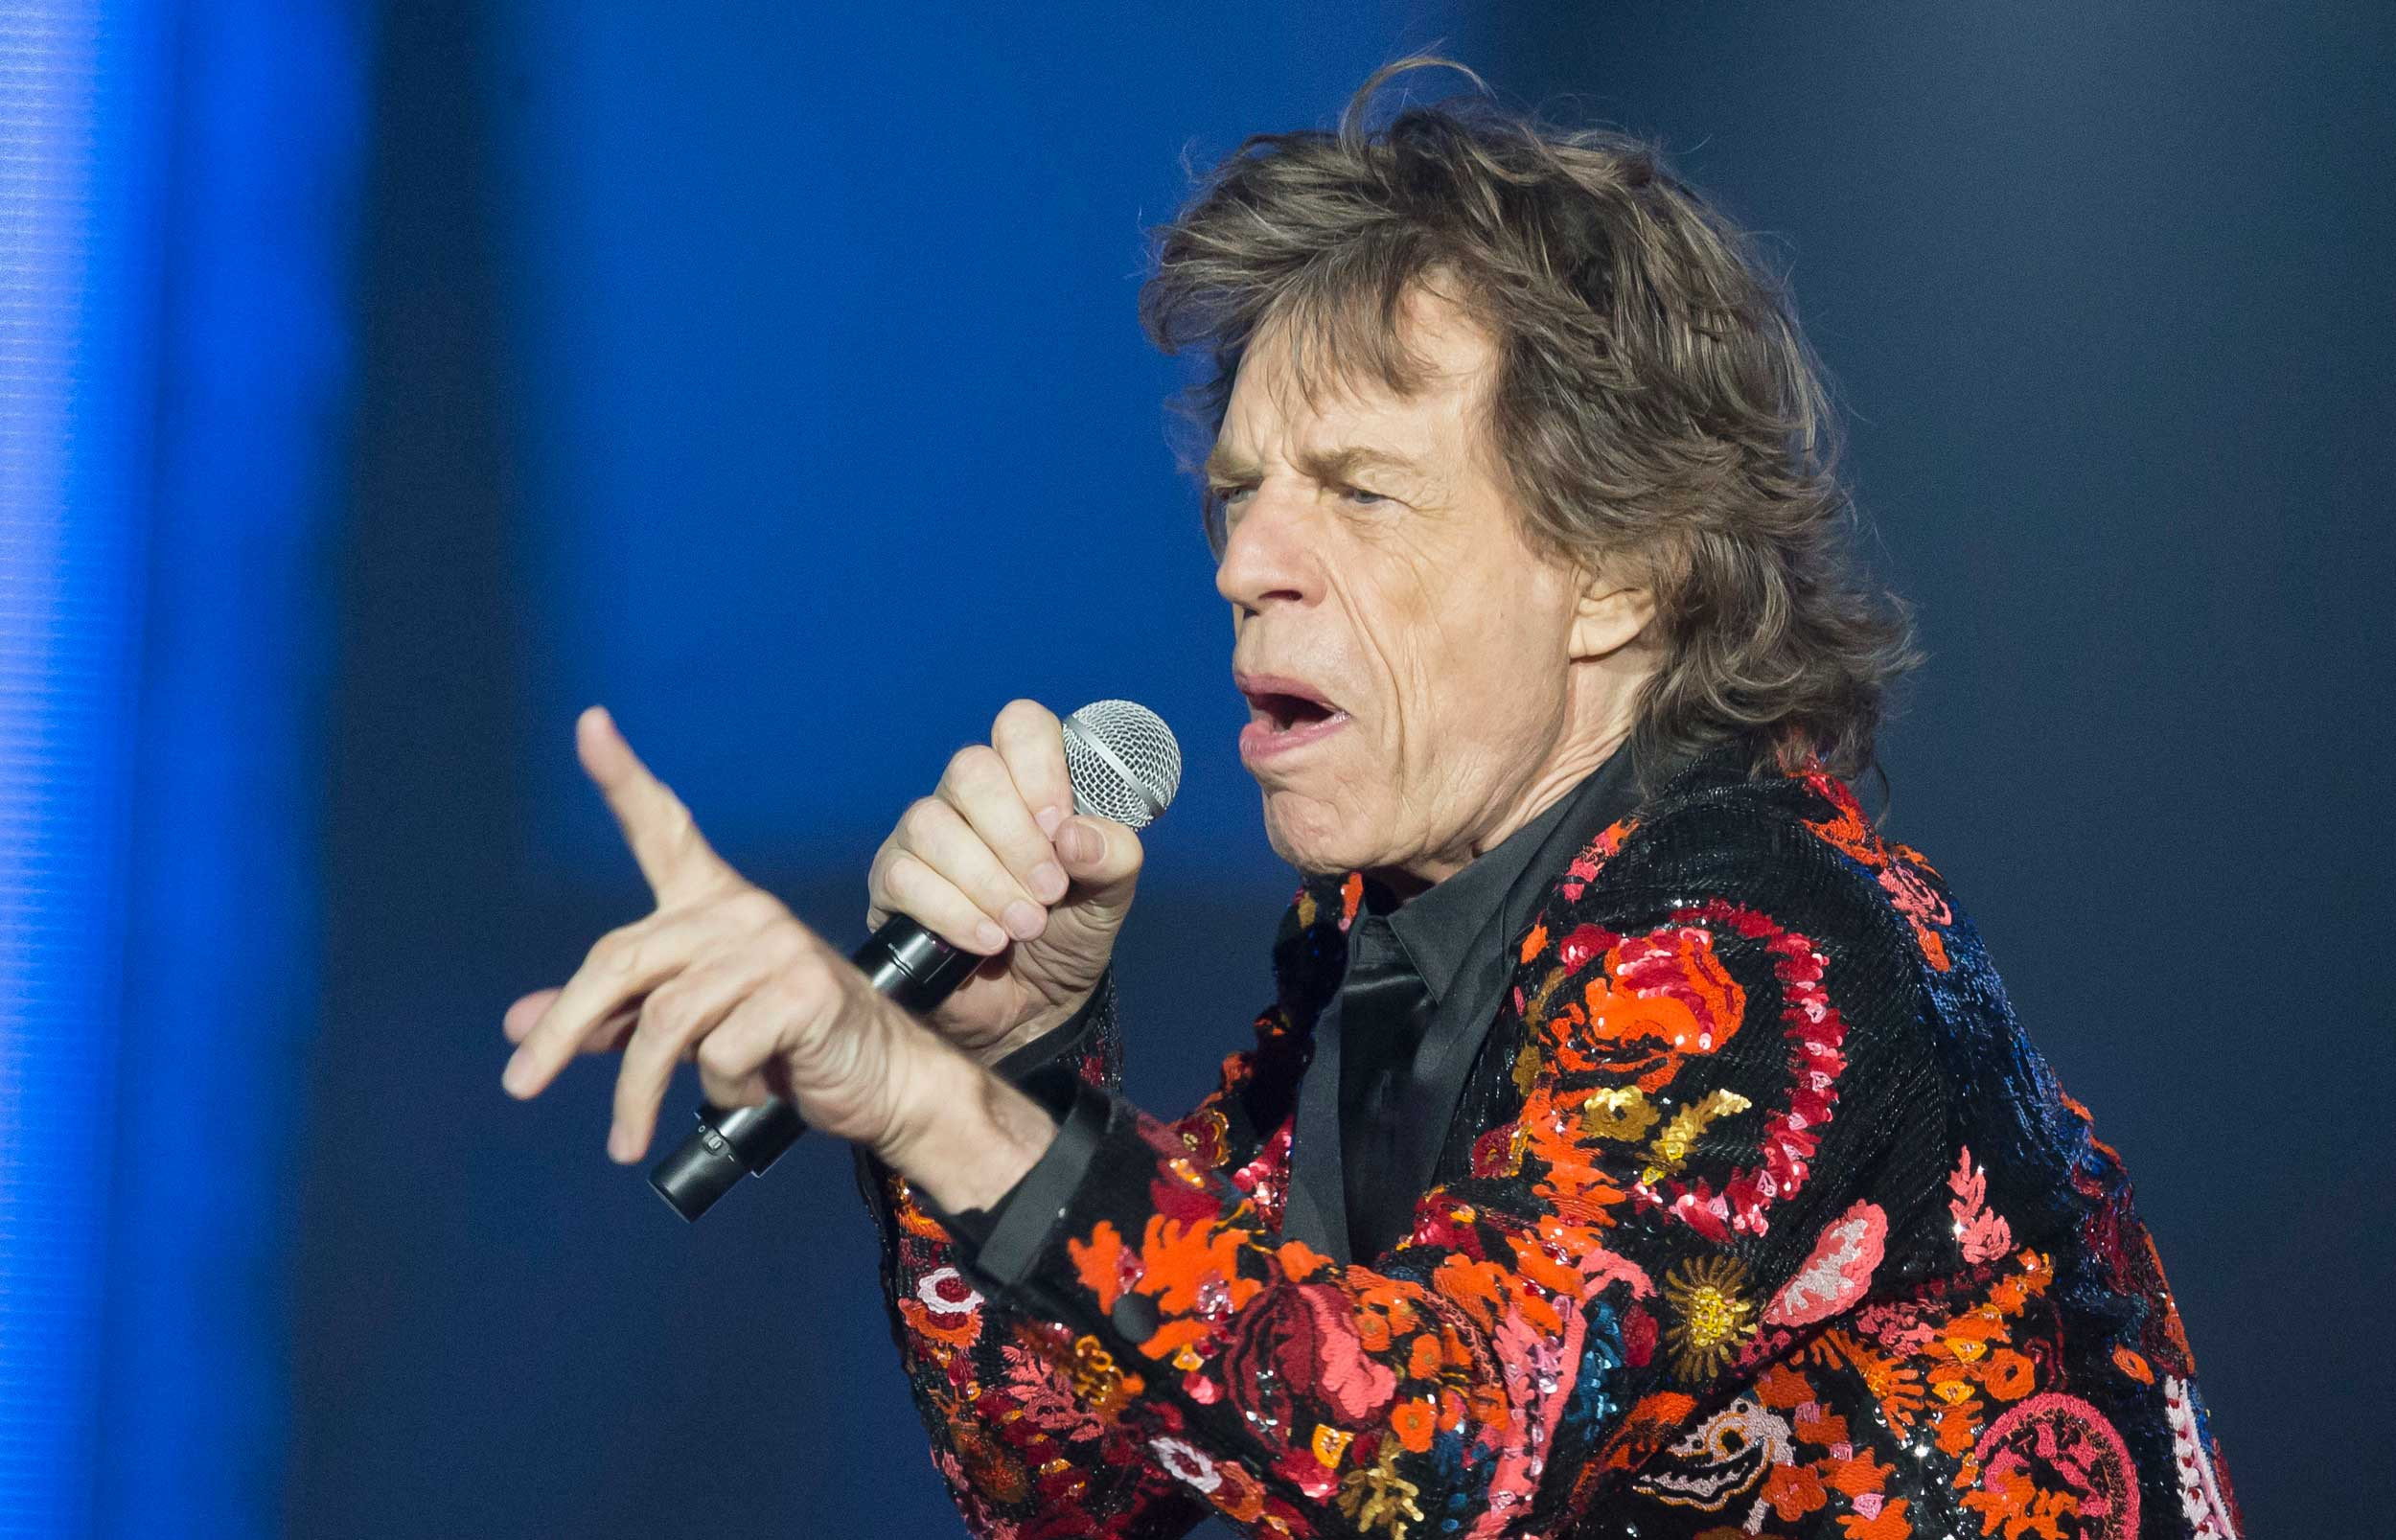 Mick Jagger performs during a concert at U Arena in Nanterre, outside Paris, on October 22, 2017.